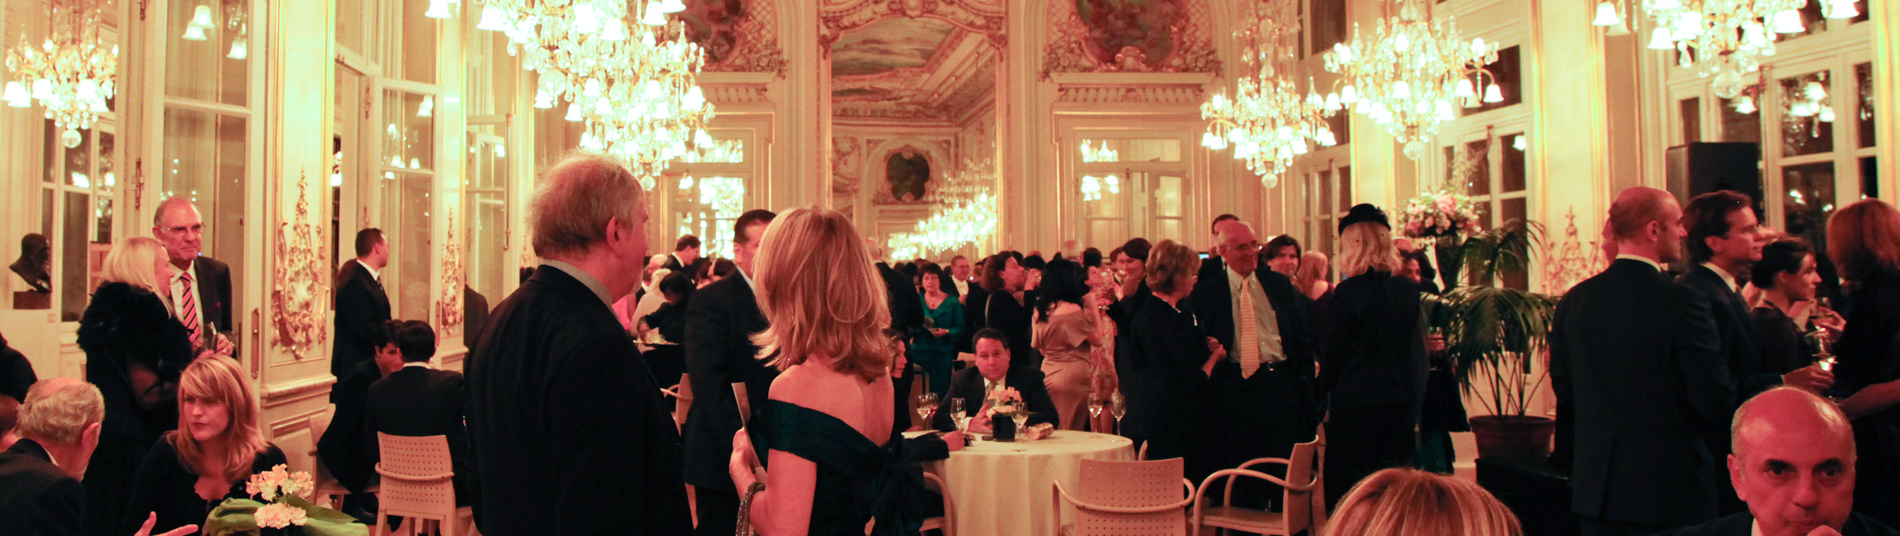 2012 Gala Impressionism and Fashion a huge success